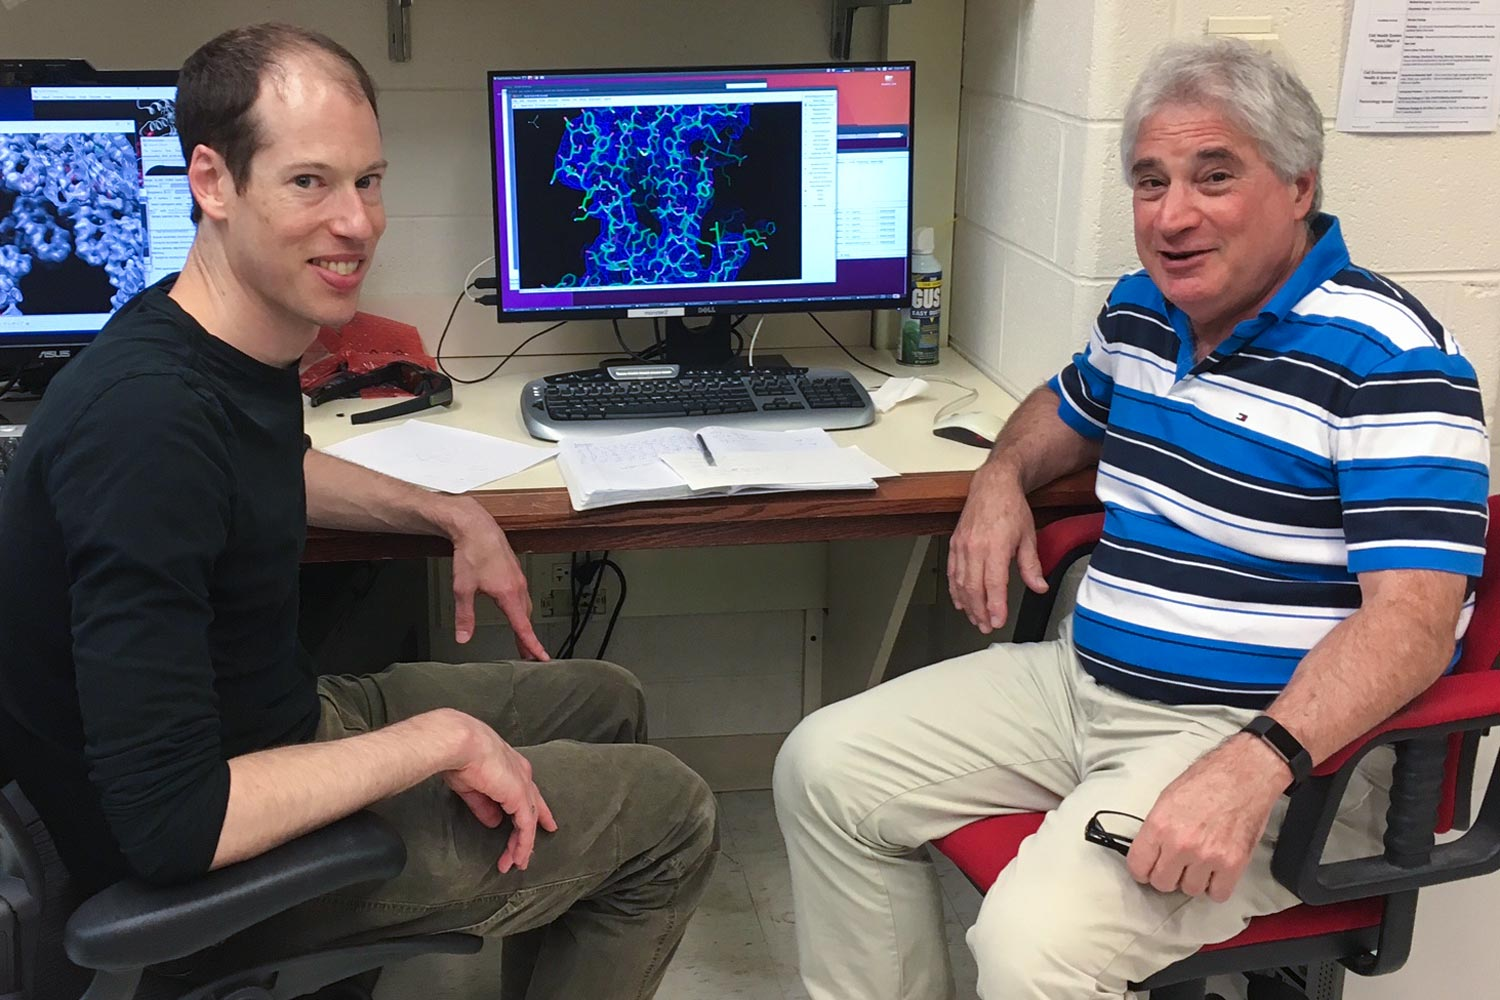 Dr. Peter M. Kasson and Edward H. Egelman of the School of Medicine observed and modeled the structure of the virus.